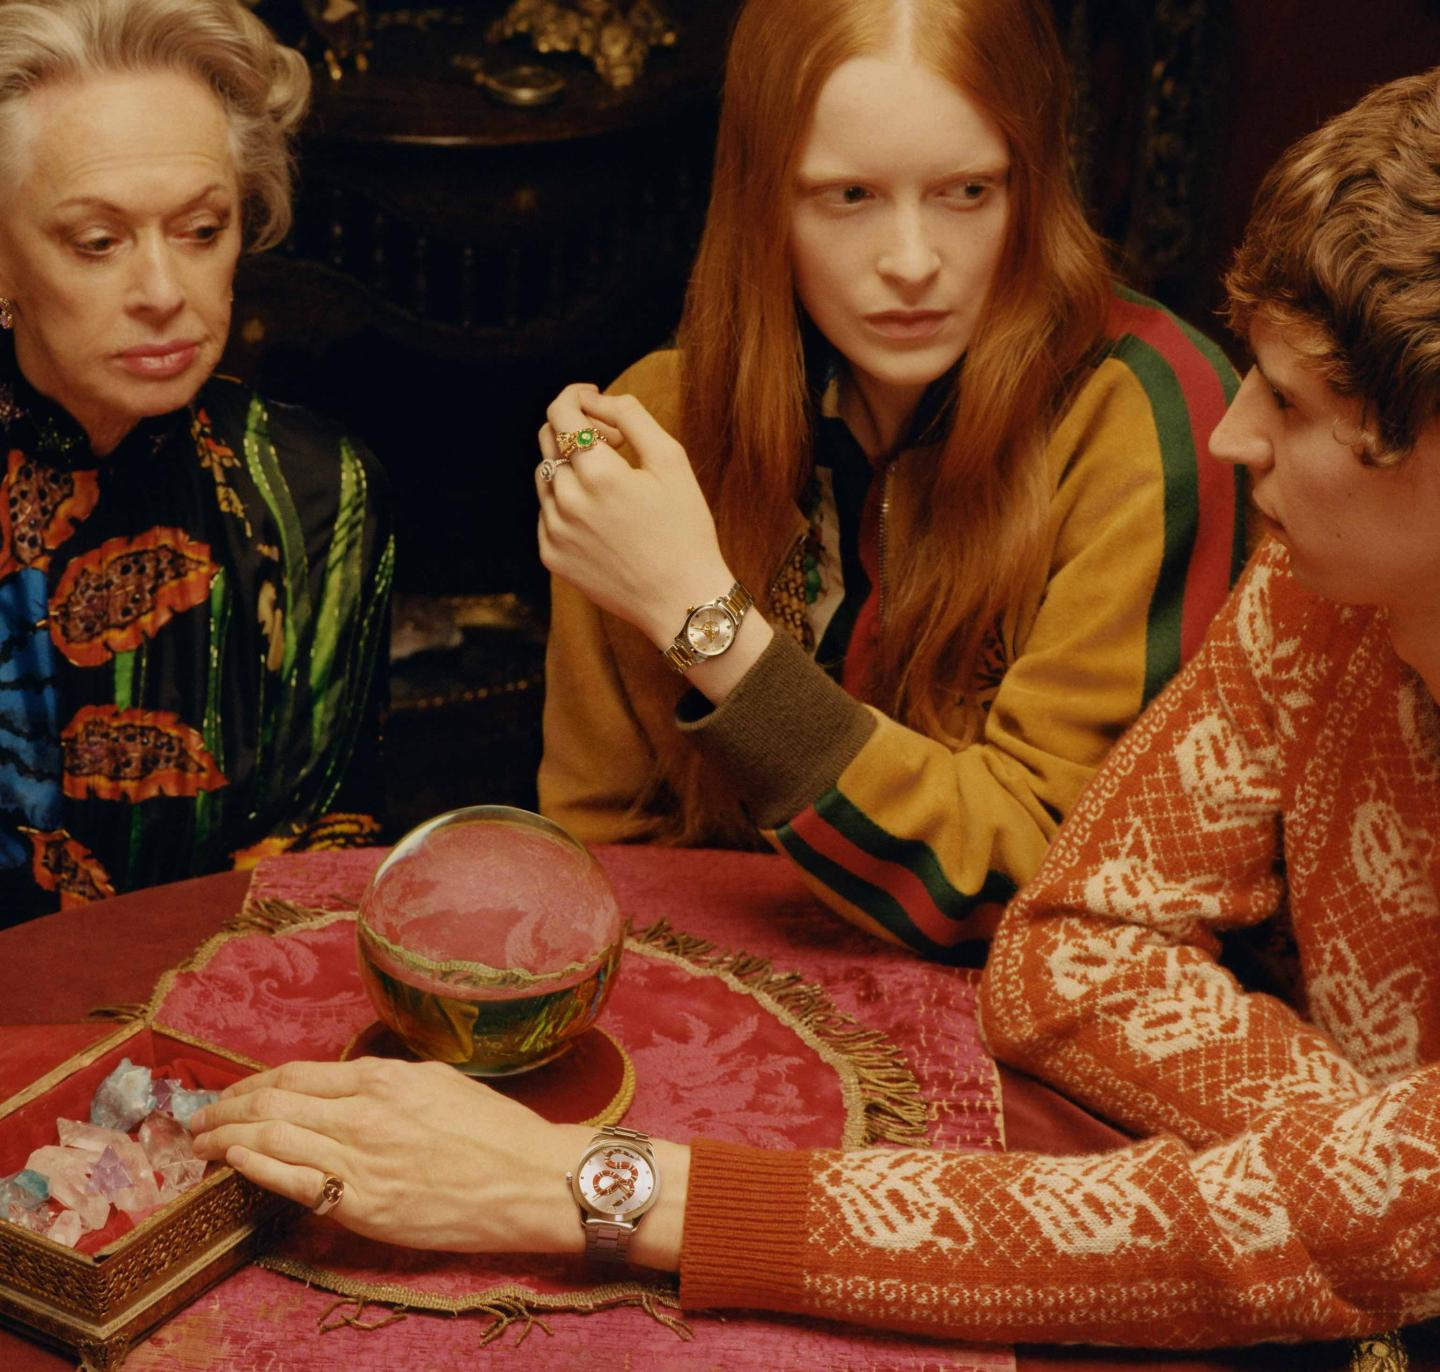 Gucci's new campaign visual featuring Tippi Hedren